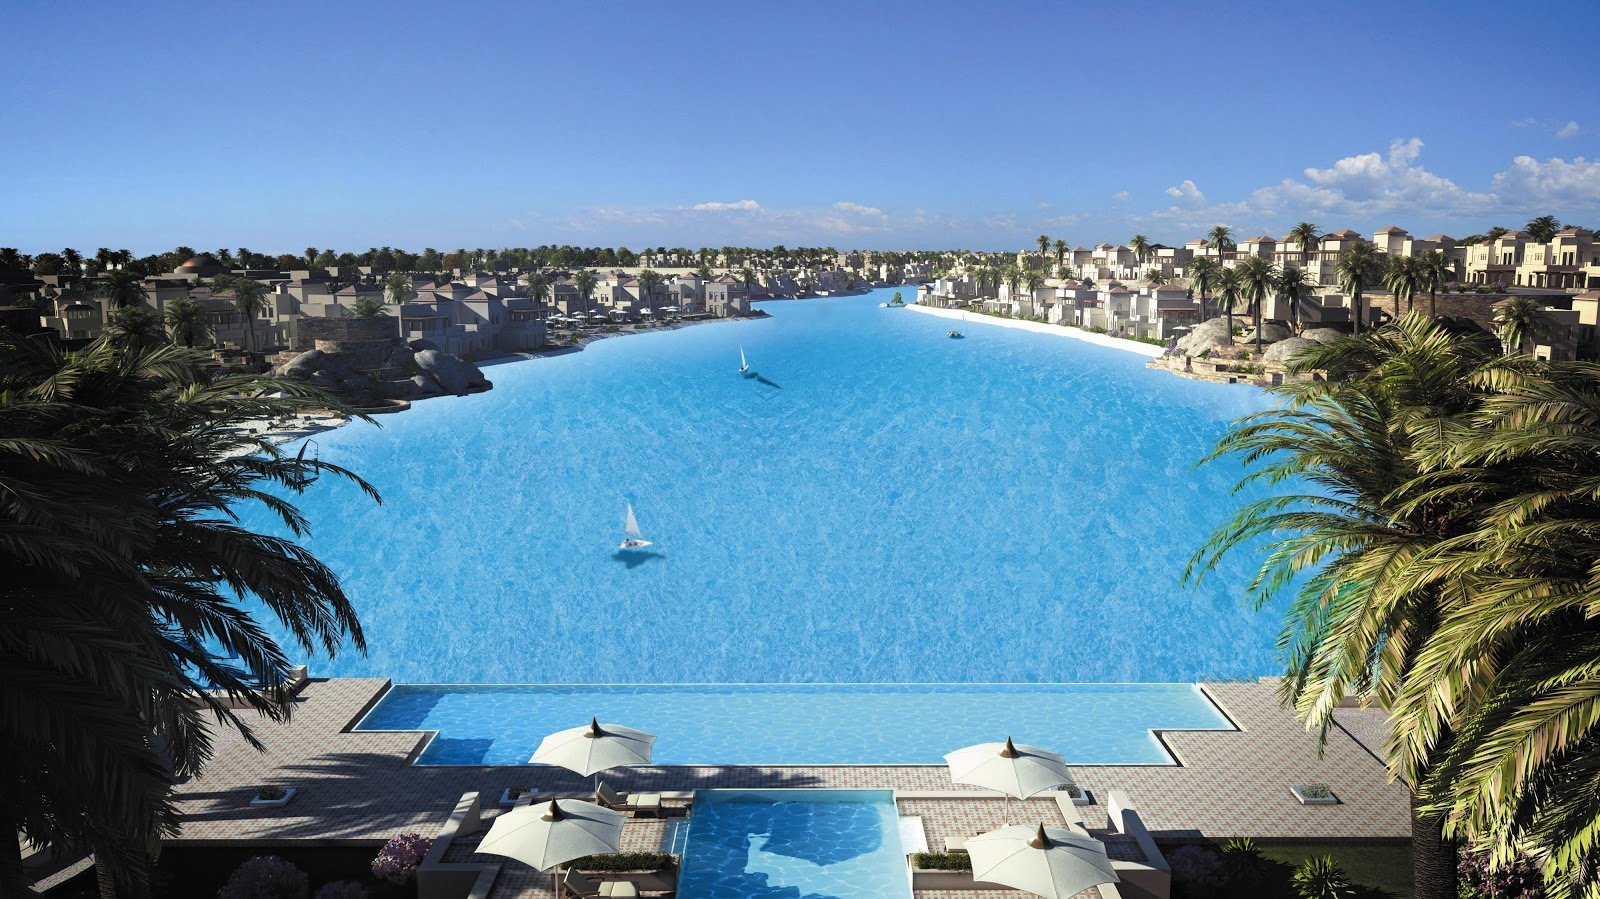 Egypt travel news world s largest swimming pool in egypt for Largest swimming pool in the us